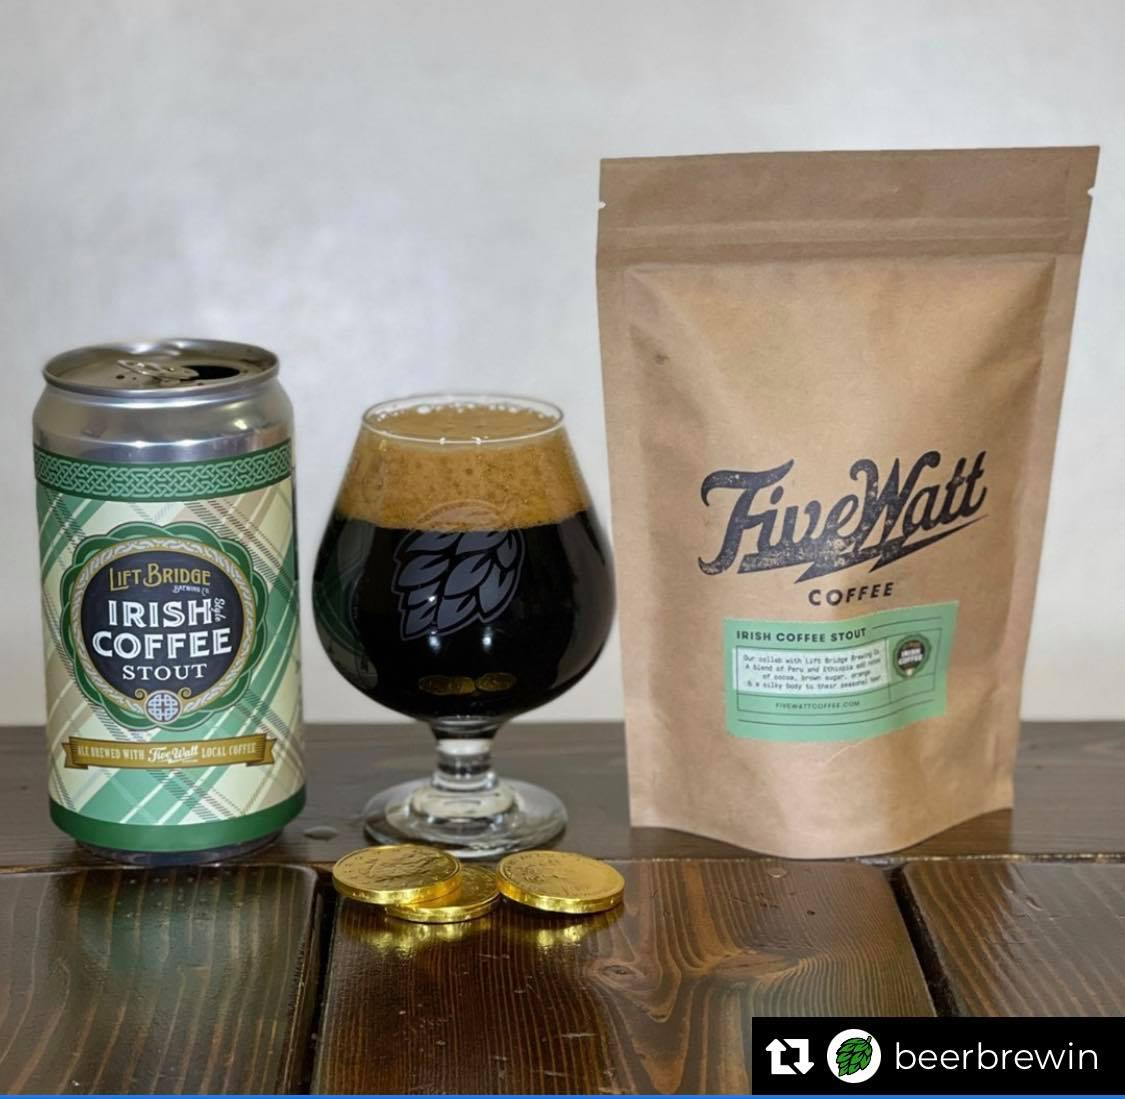 """""""Time for some @LiftBridge Irish Coffee Stout action! Inspired by its namesake, its roasty creamy milk stout base, blended with whiskey barrel-aged imperial stout and @fivewattcoffee Get some of this Irish luck in the Lift Bridge taproom.""""  📸 #repost @BeerBrewin"""